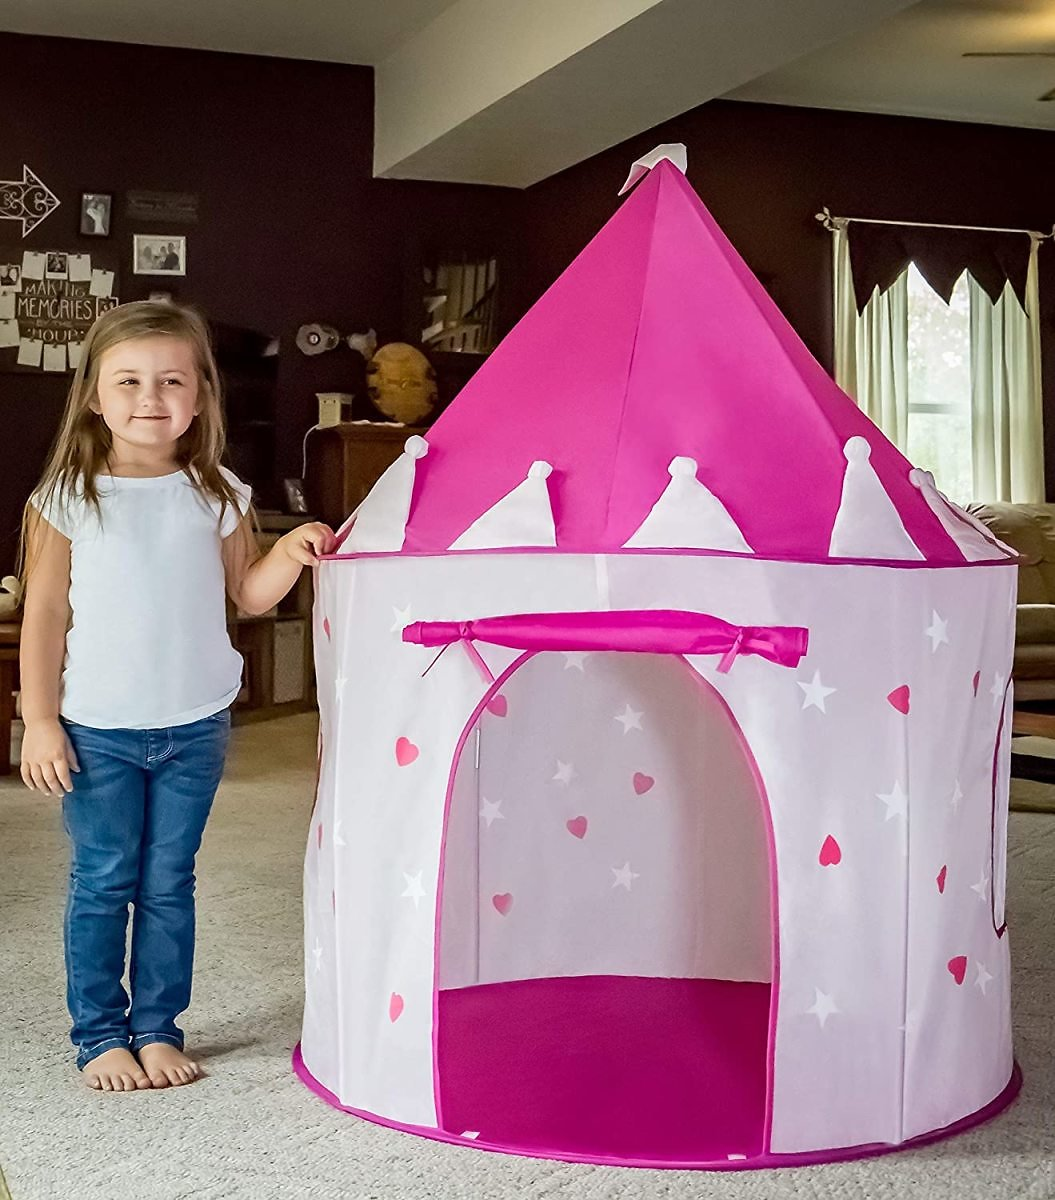 FoxPrint Princess Castle Play Tent with Glow in the Dark Stars (Pink)